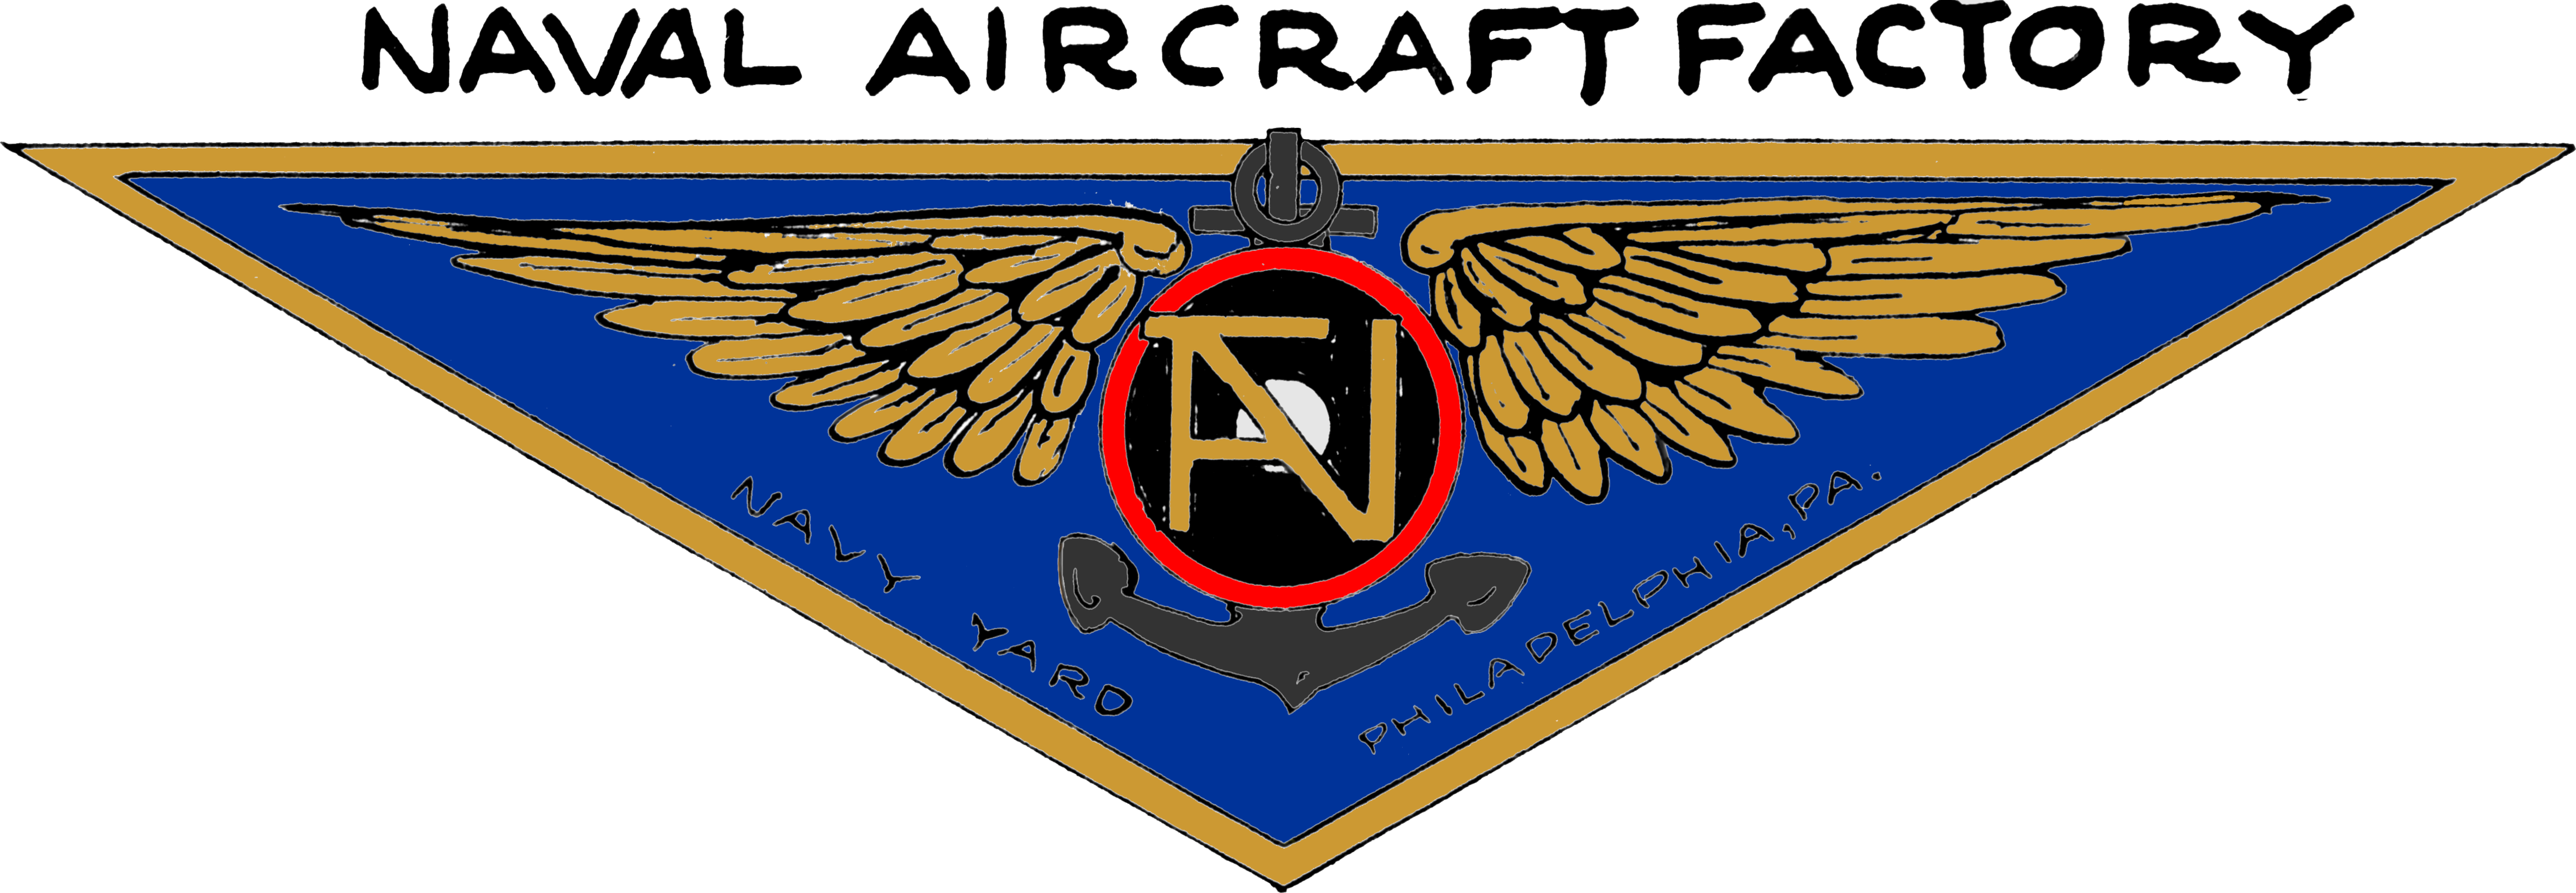 Fileinsignia of the us navy naval aircraft factory in 1951 fileinsignia of the us navy naval aircraft factory in 1951 coloured biocorpaavc